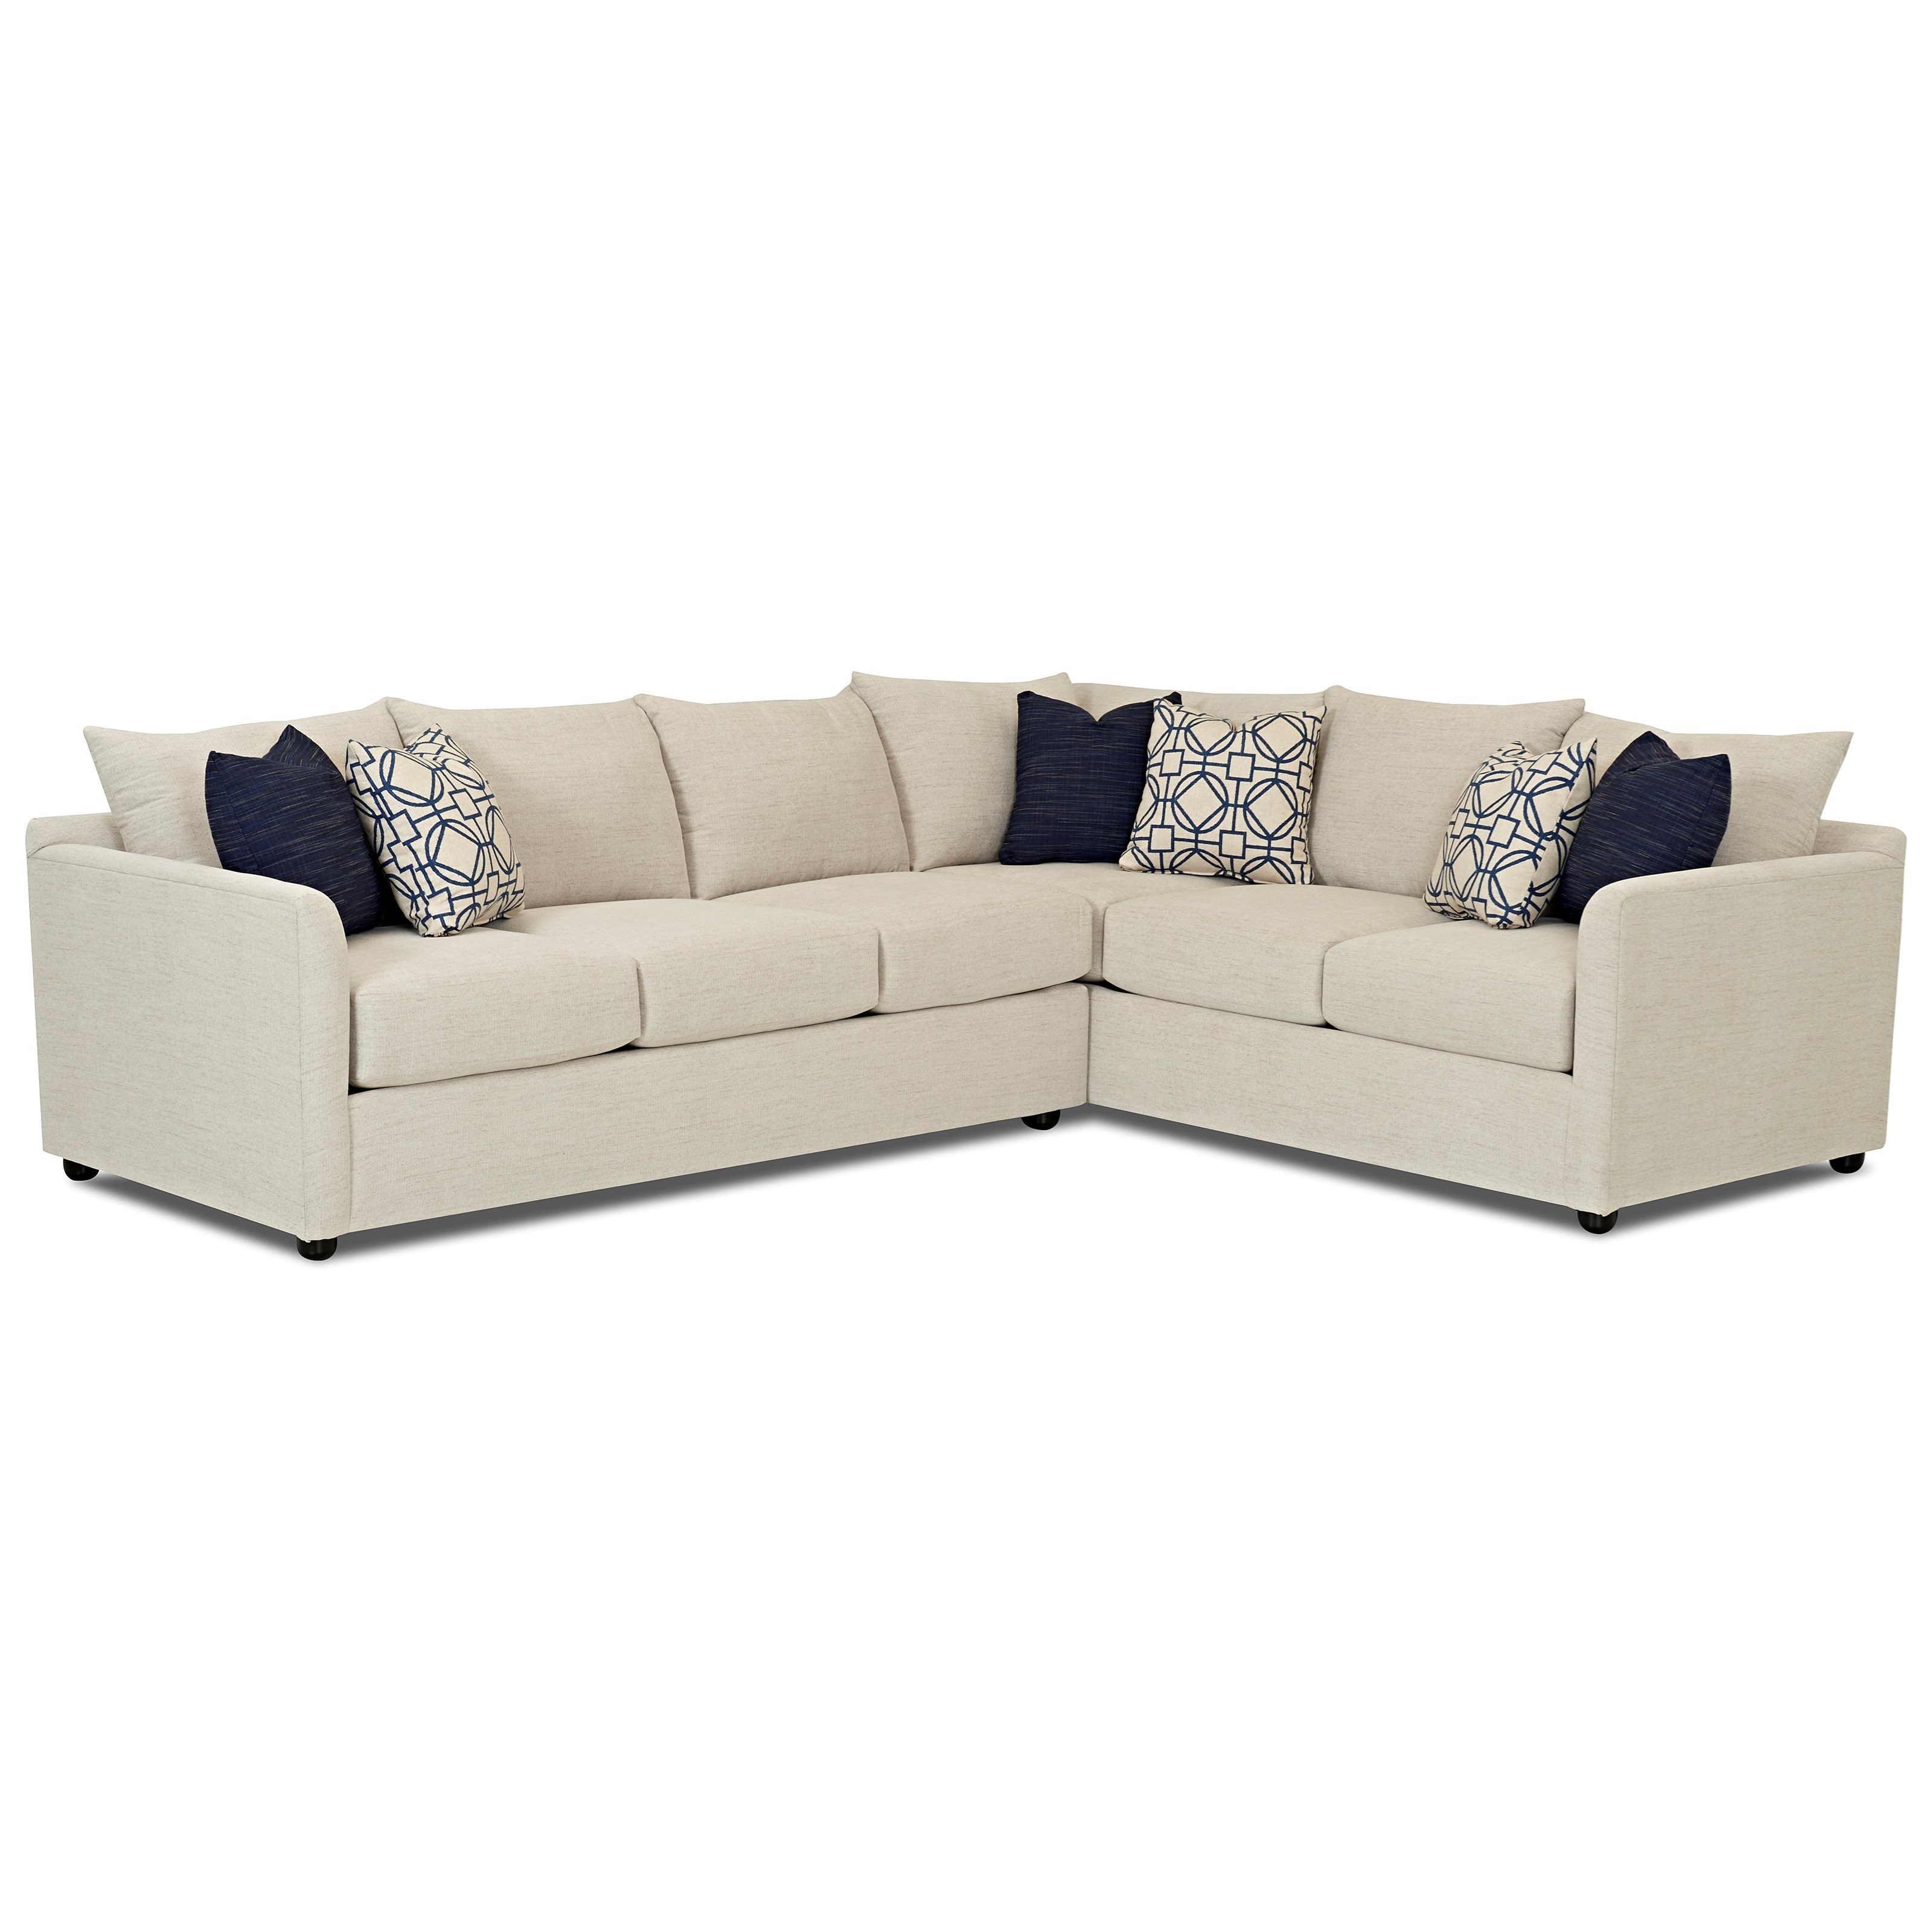 transitional sectional sofa with tuxedo arms by trisha yearwood home rh wolffurniture com Herman Miller Tuxedo Sectional Sofa Bench Seat Sectional Sofa